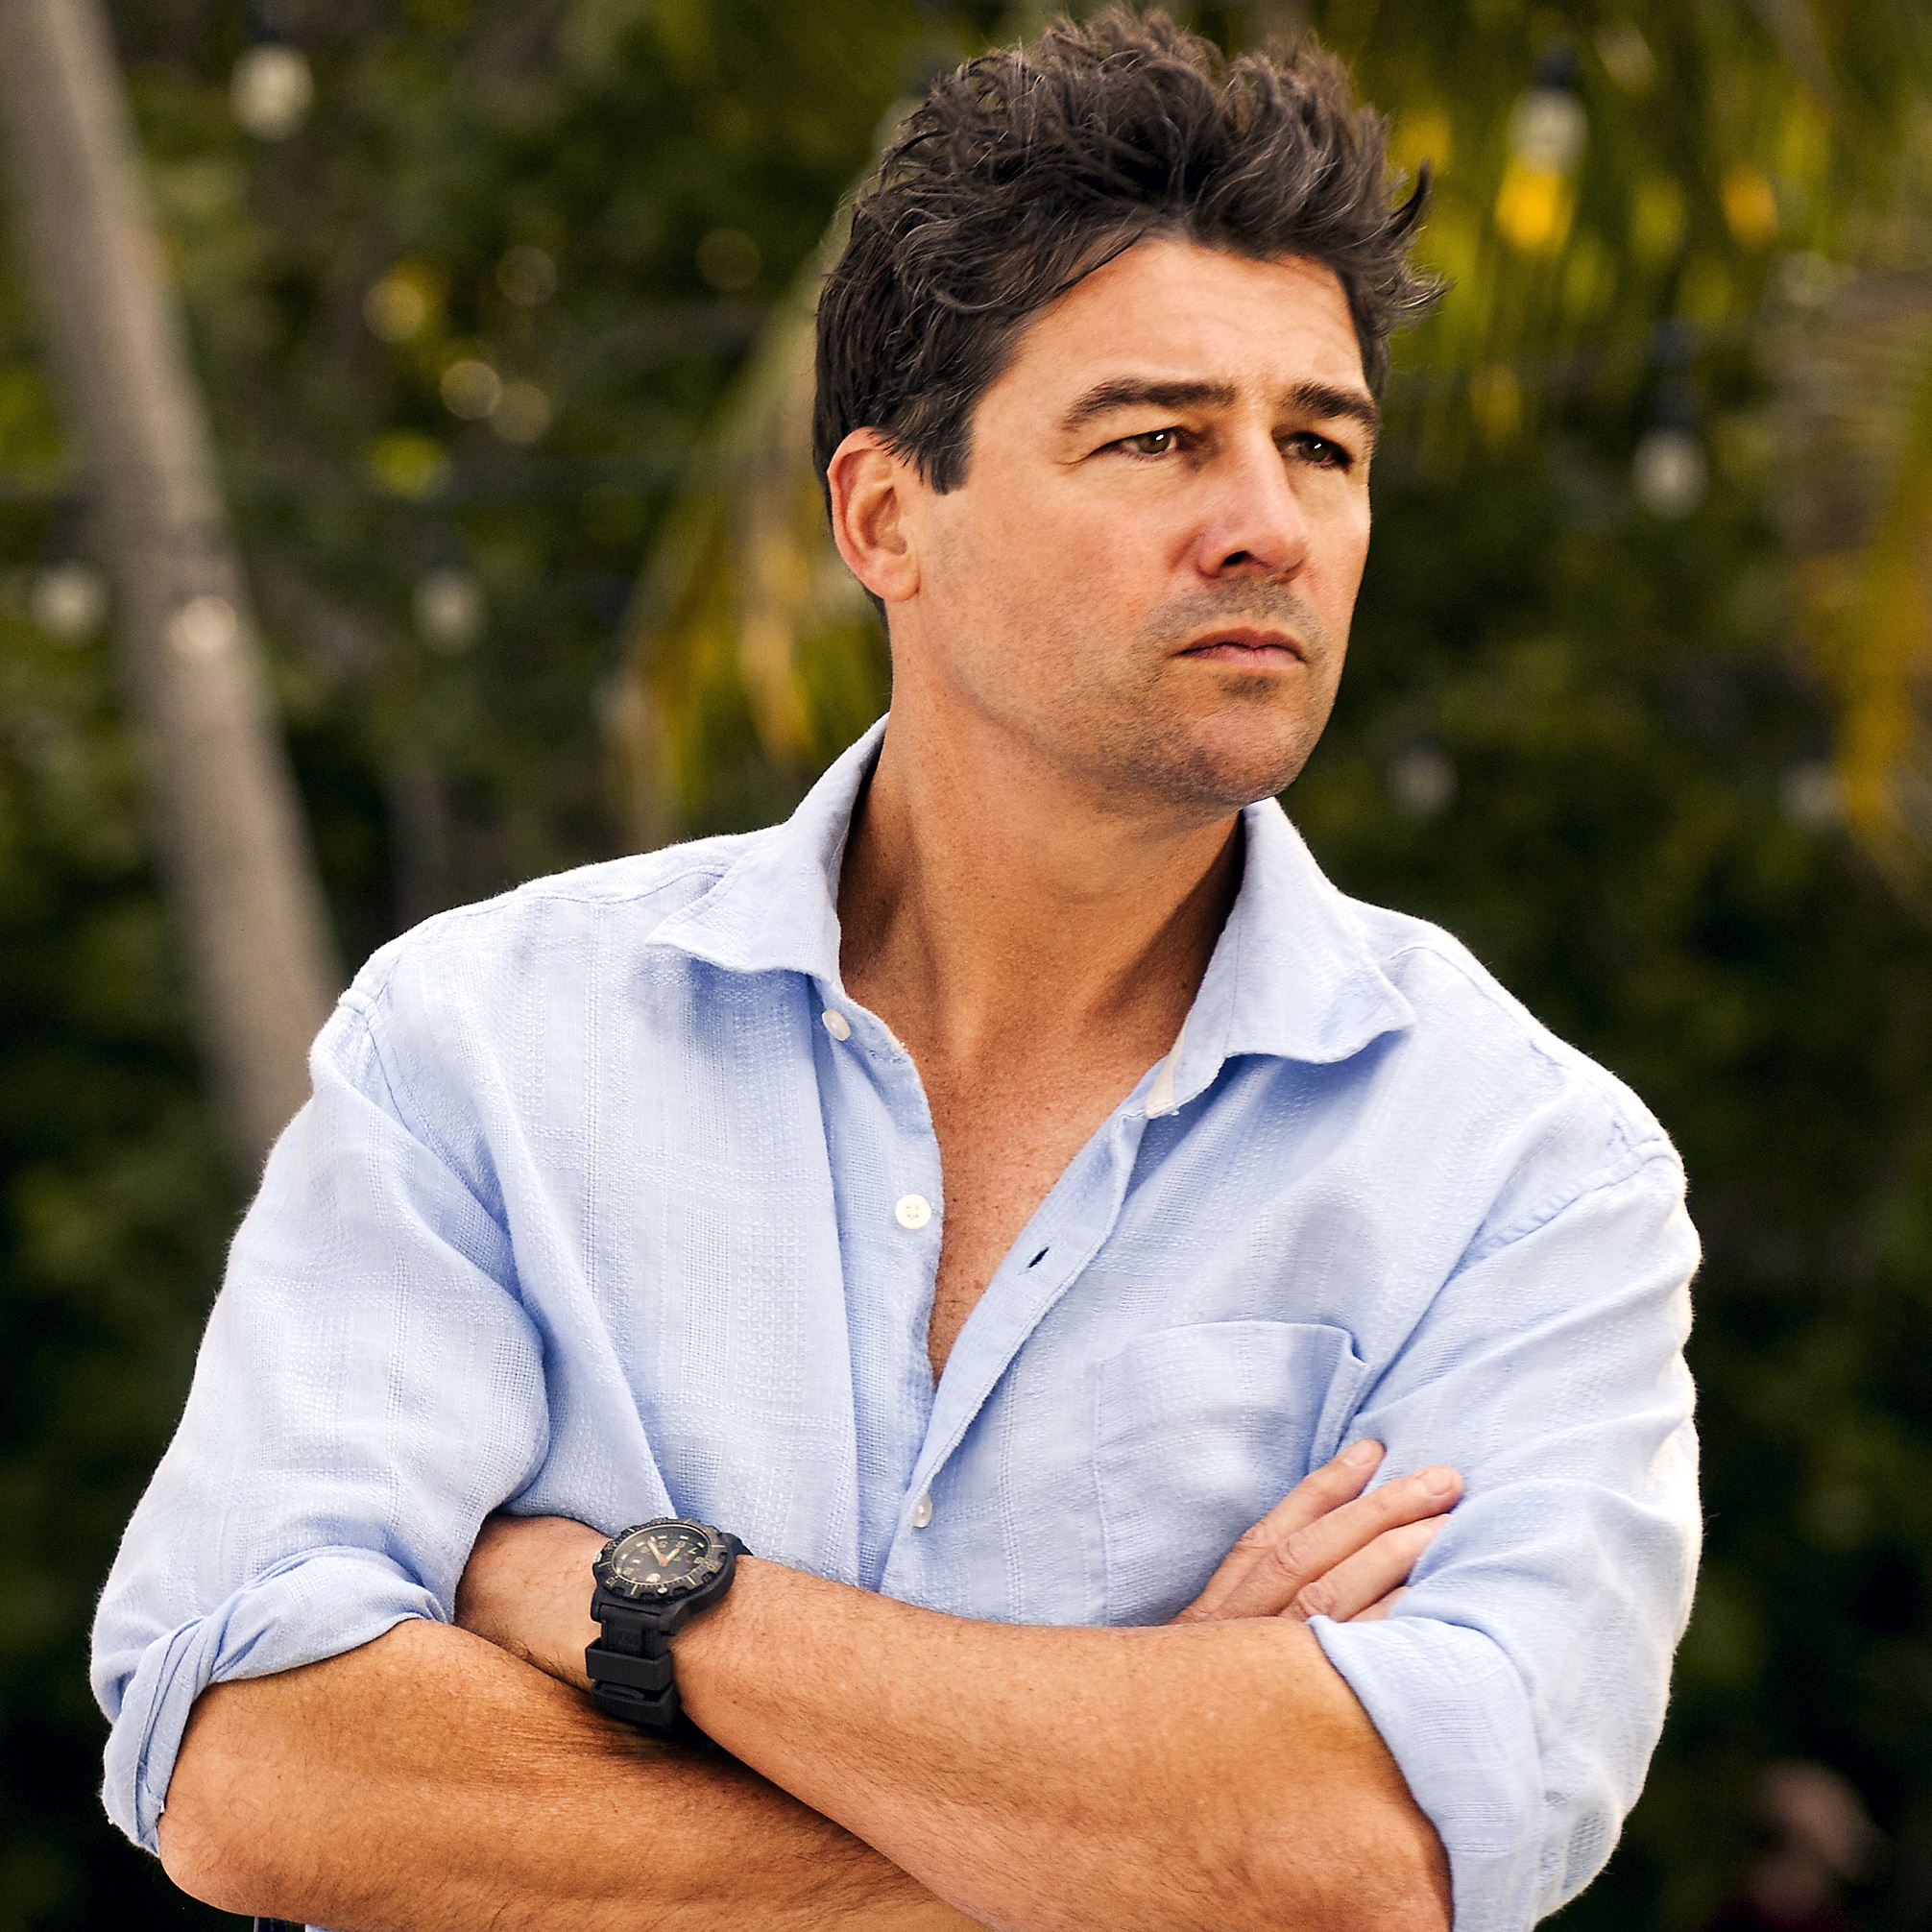 Kyle Chandler of TV fame.